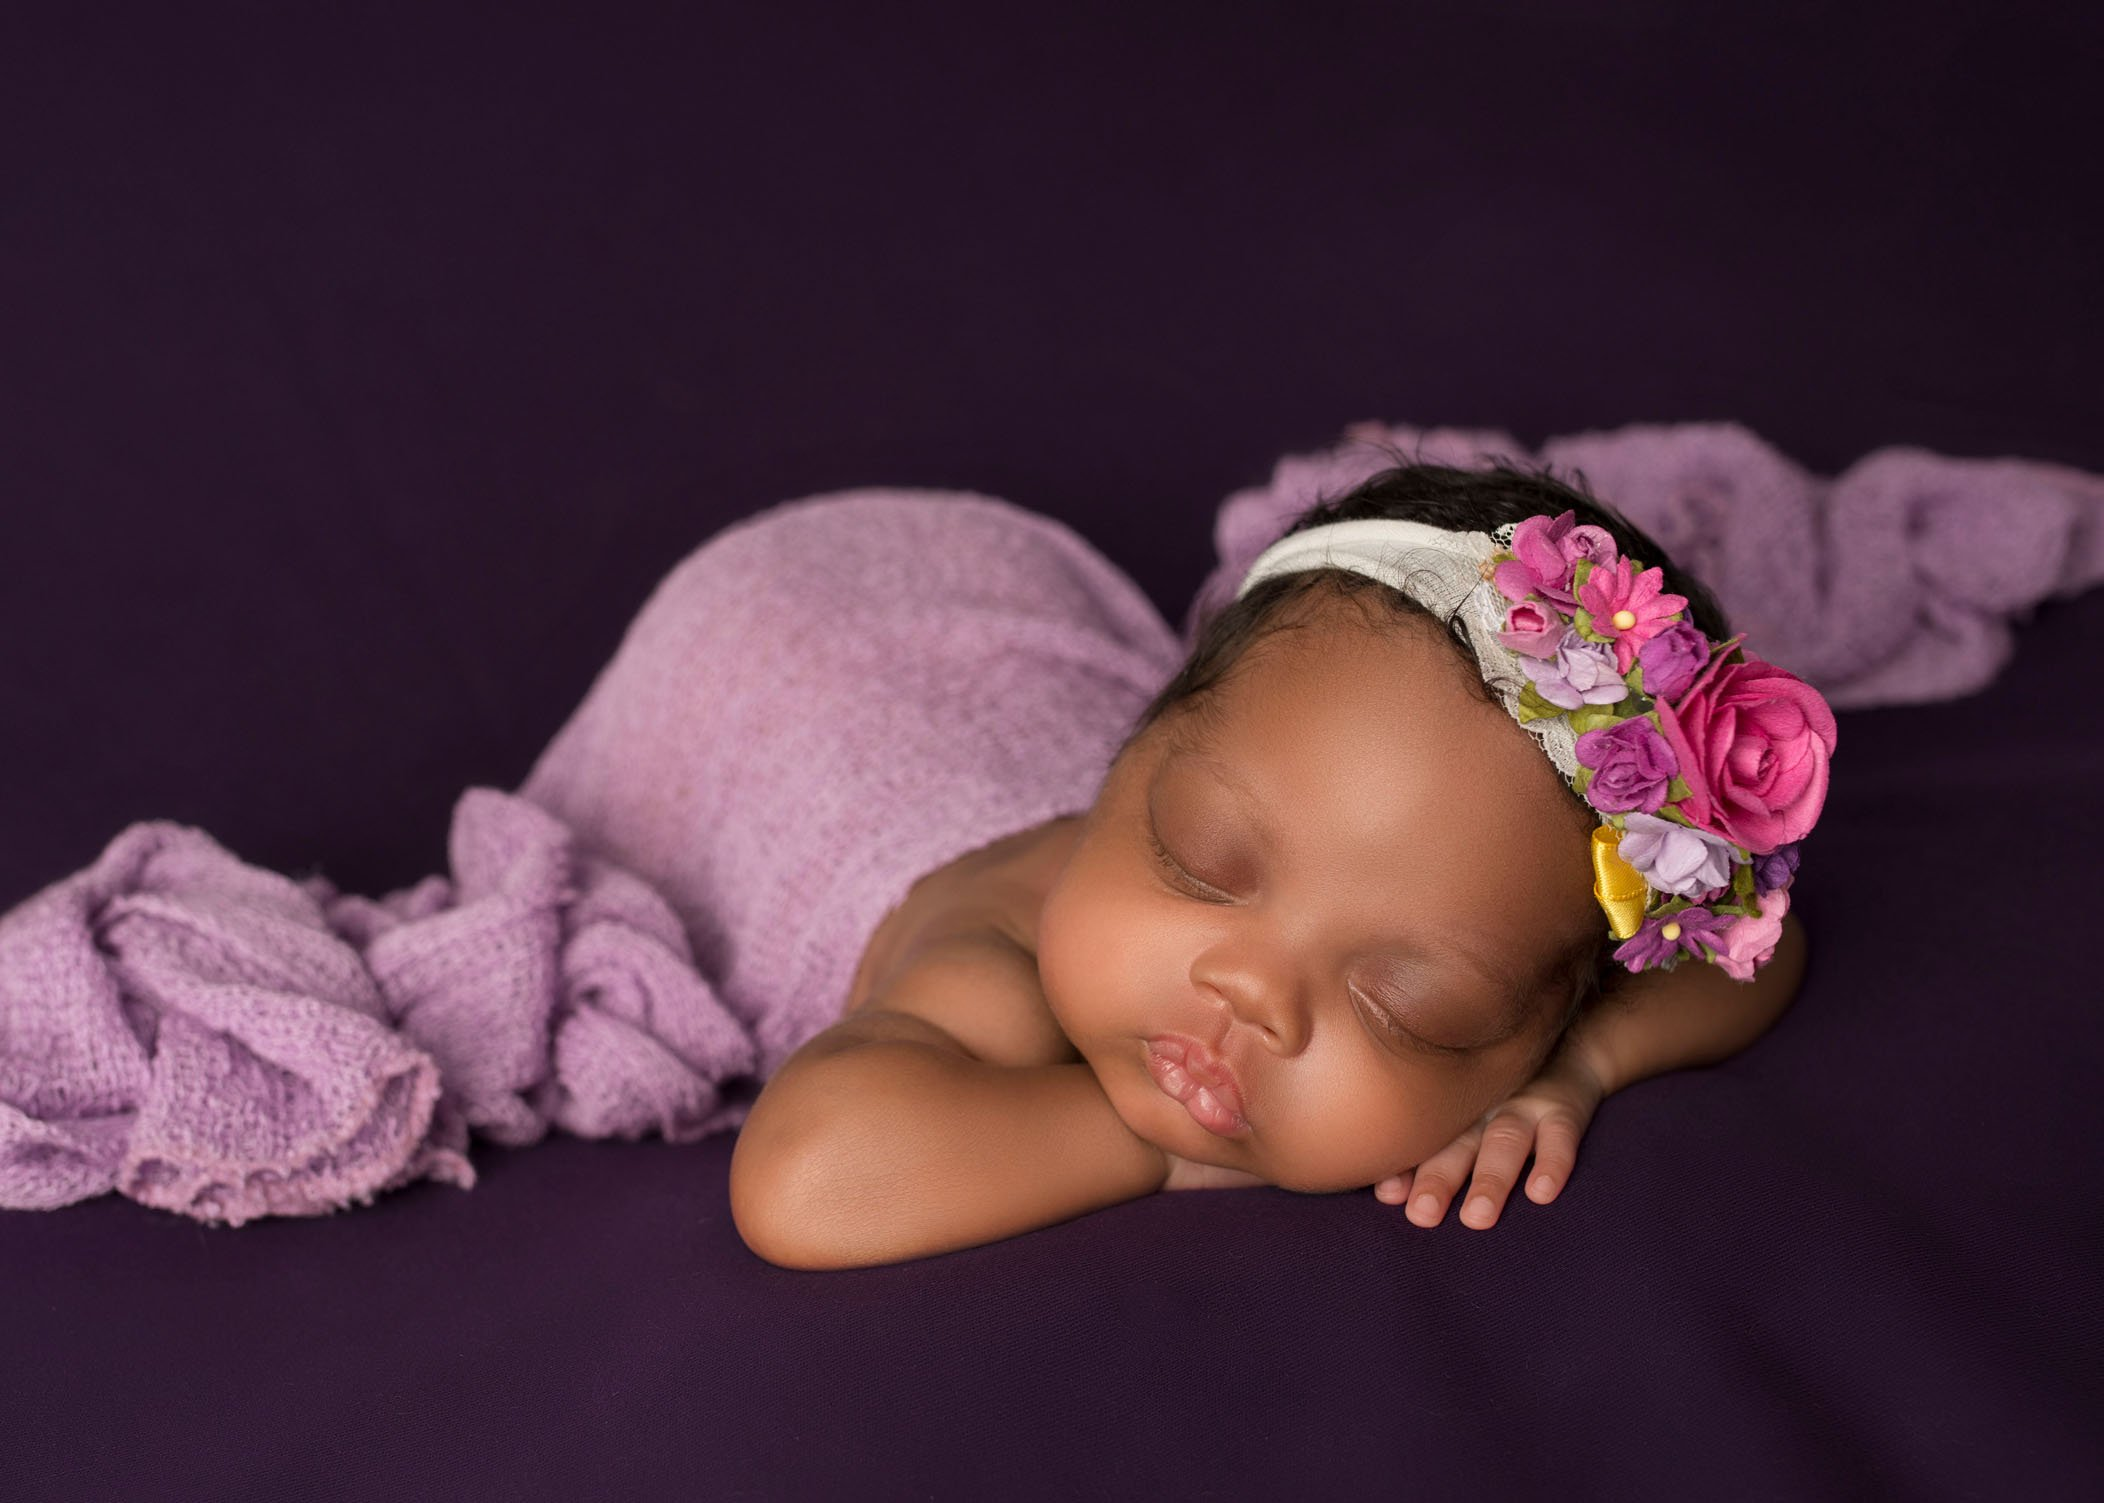 African american newborn baby girl sleeping with her head on her hands draped in lavender